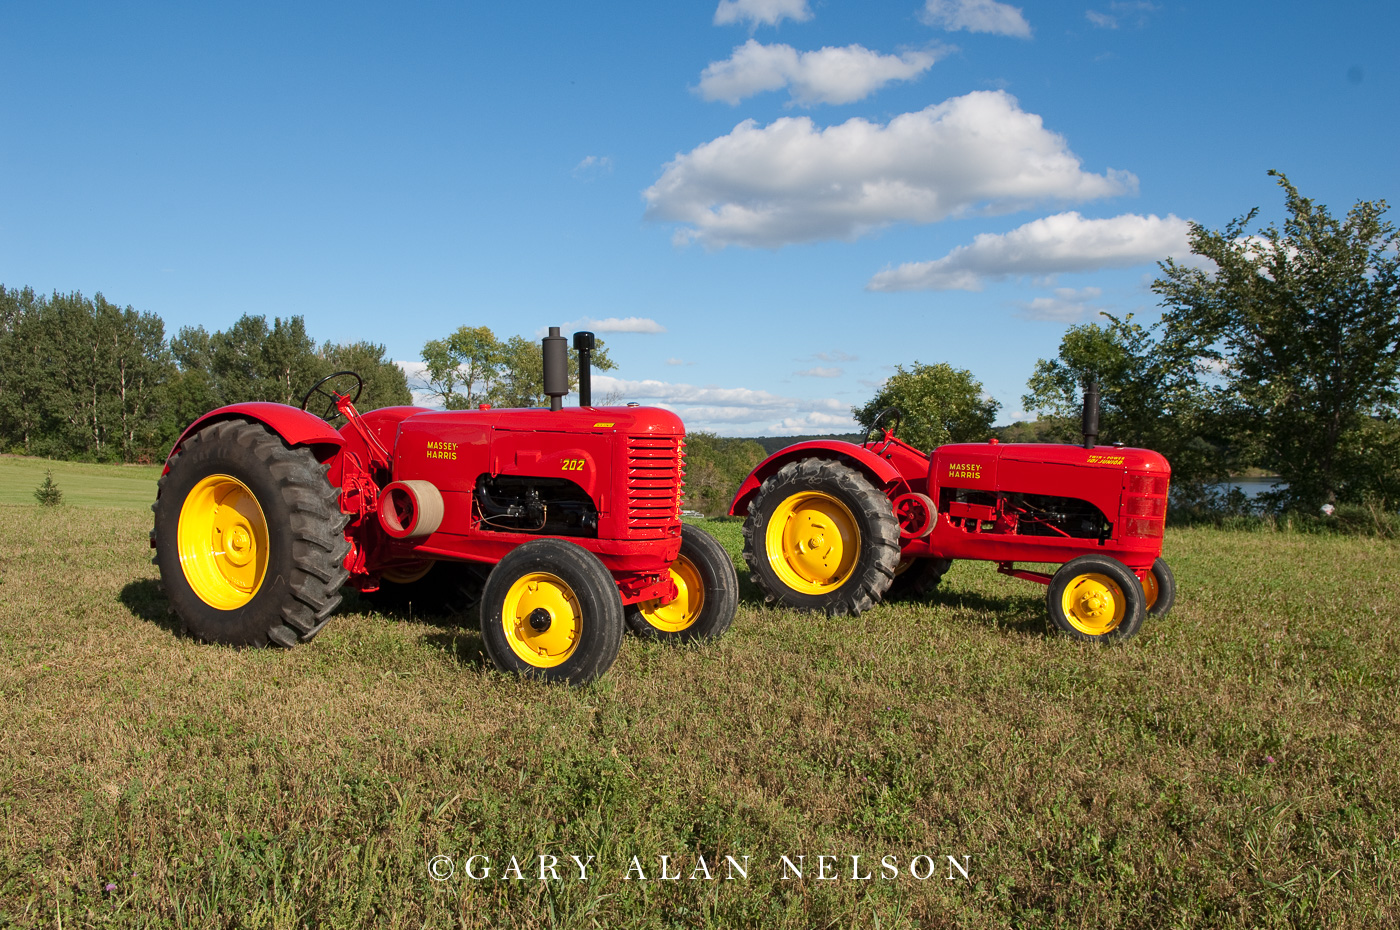 1941 Massey-Harris 202 and 1941 Massey-Harris 101 Junior